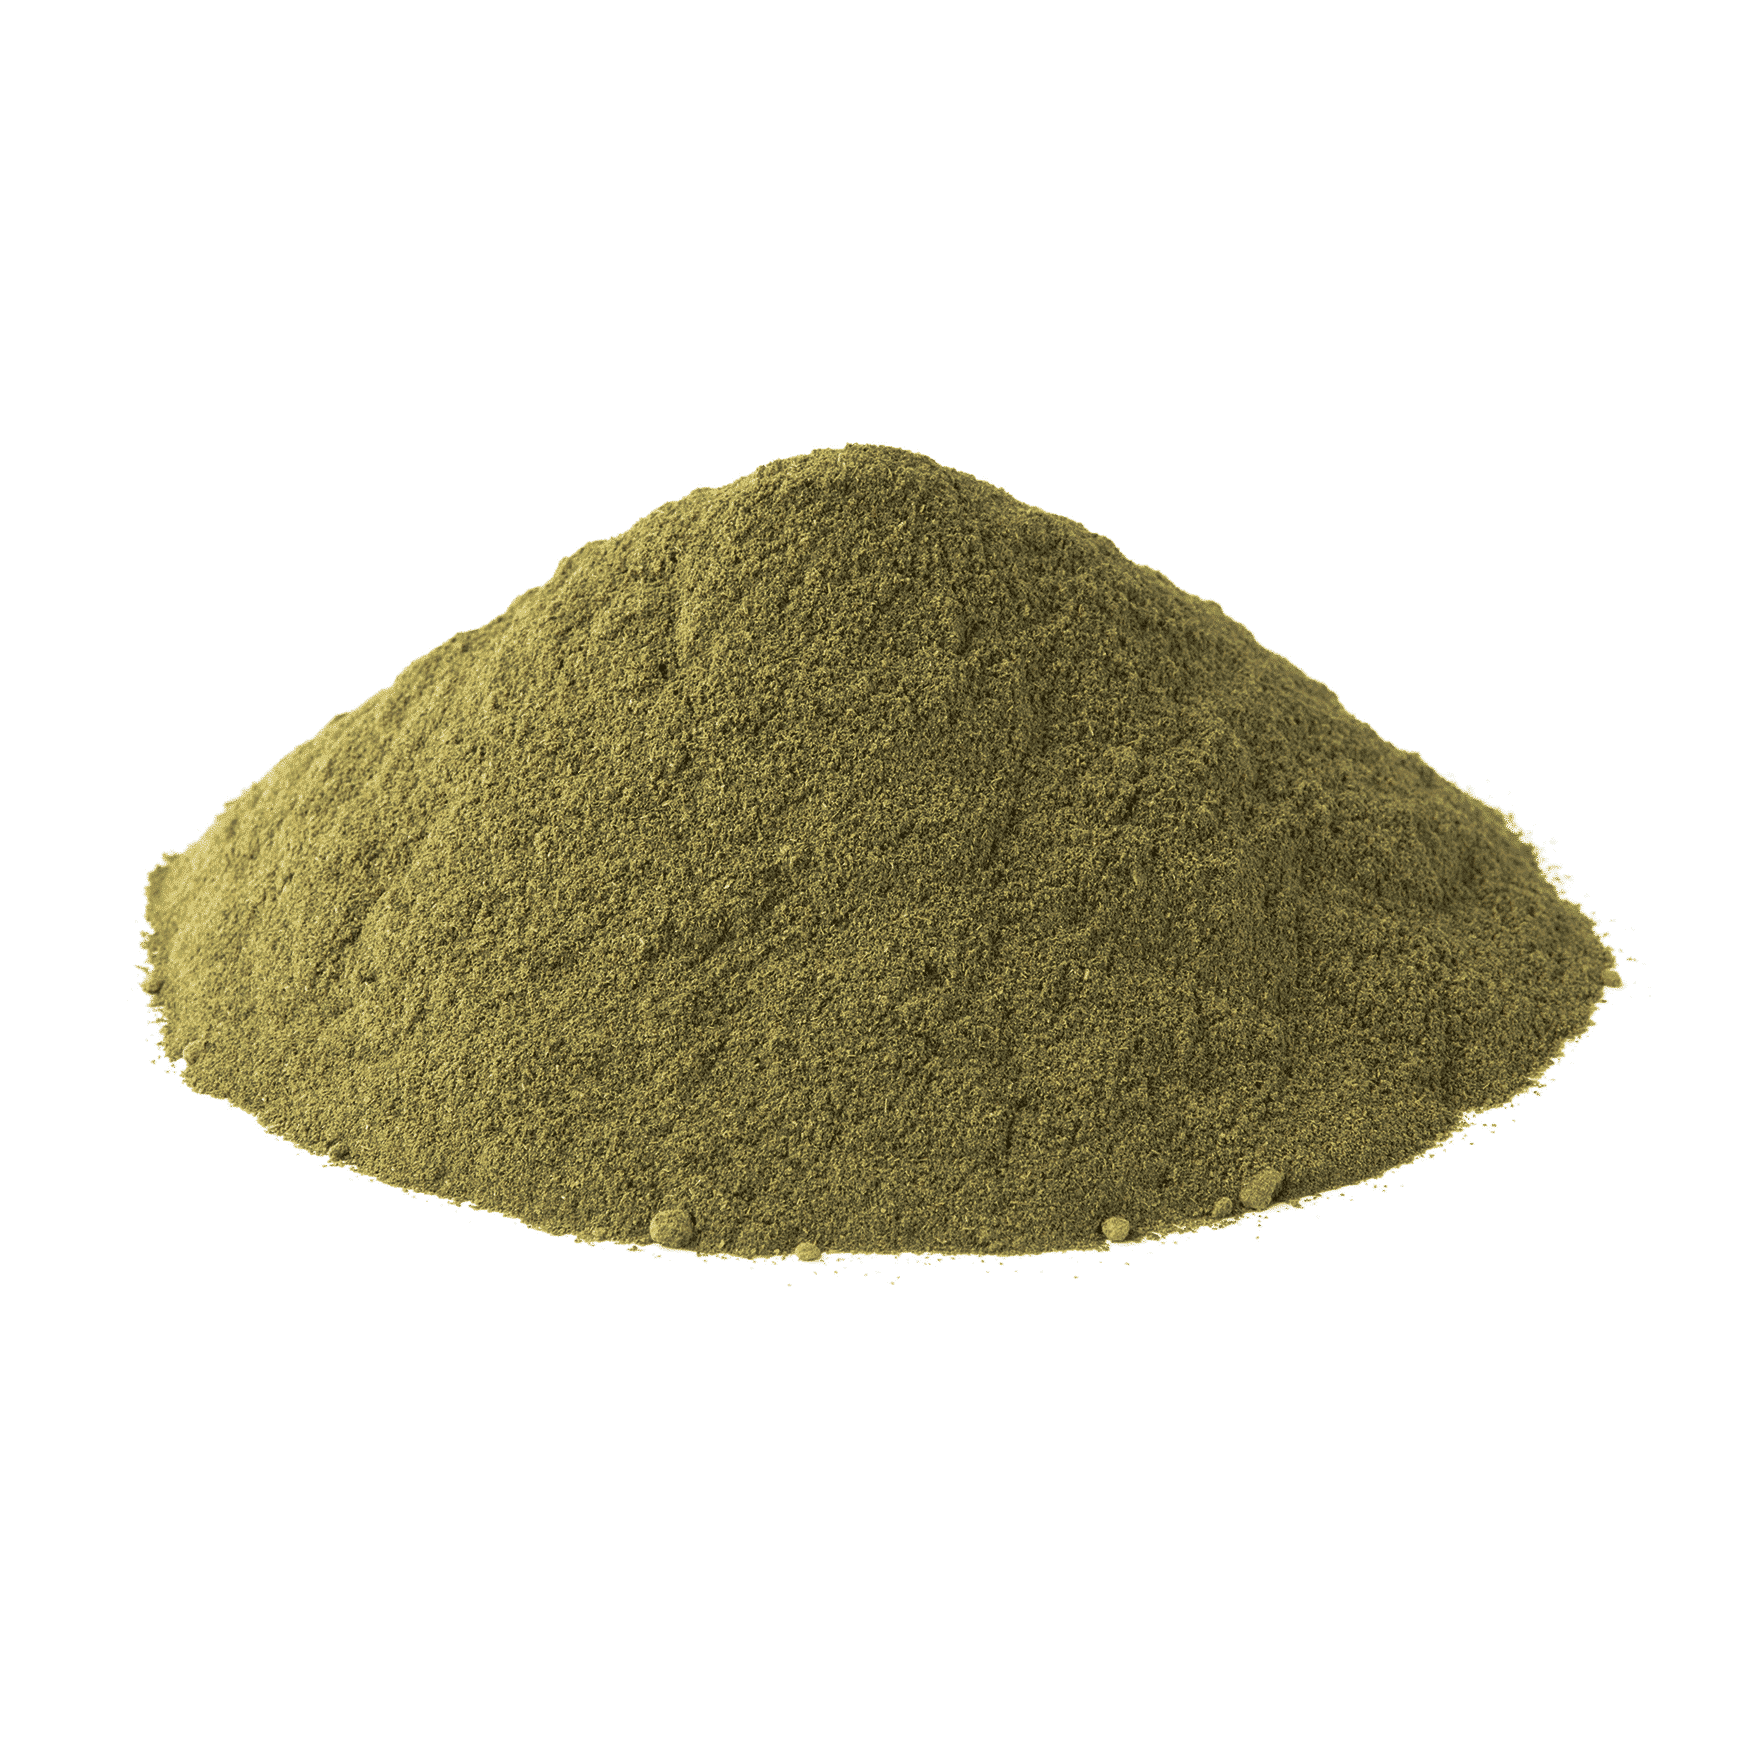 Yellow Vietnam Kratom for Sale